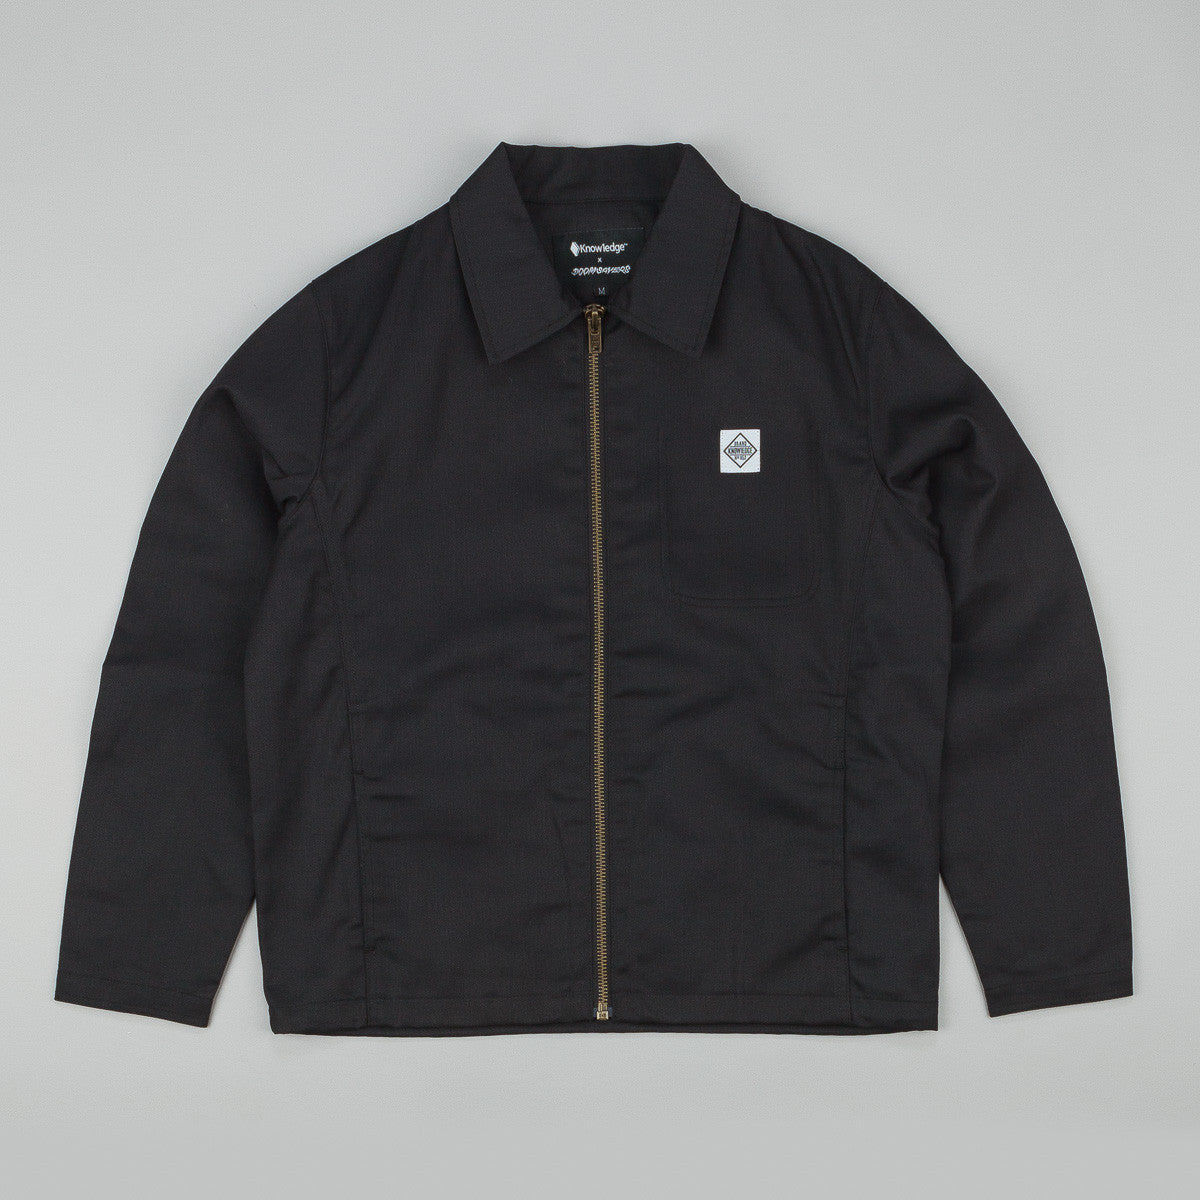 Doomsayers X Know1edge Garage Jacket